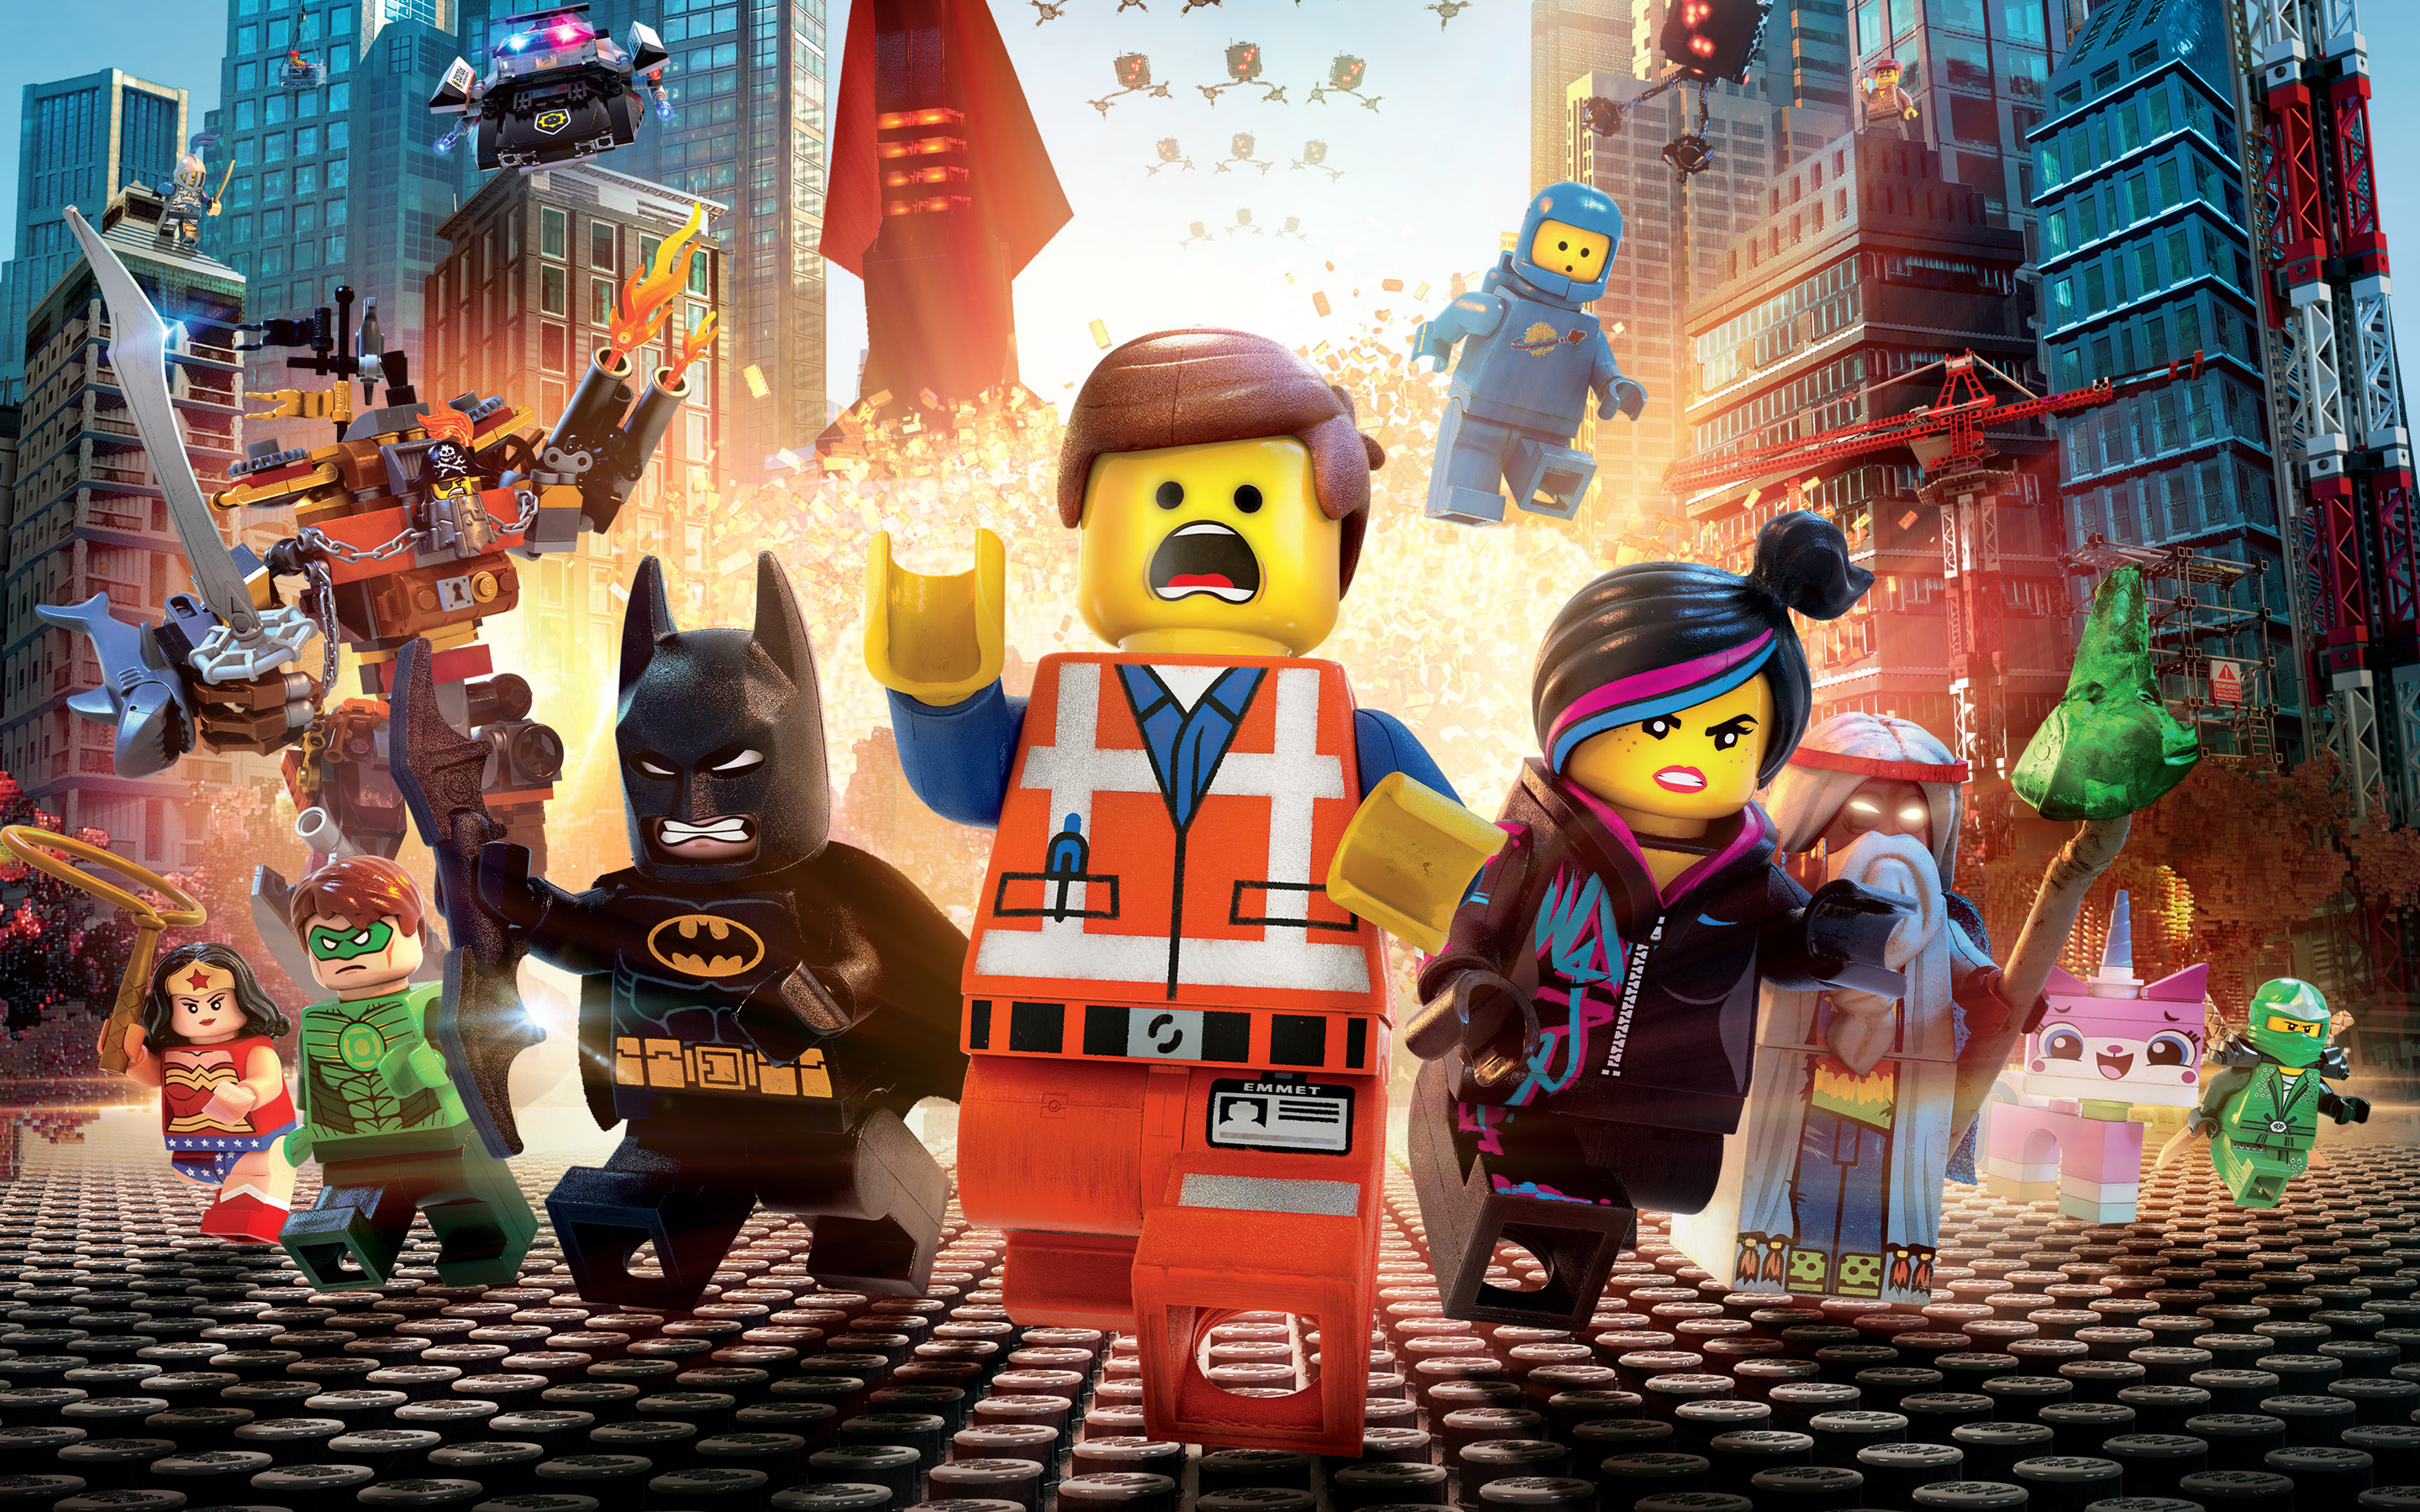 The lego movie 2014 wide